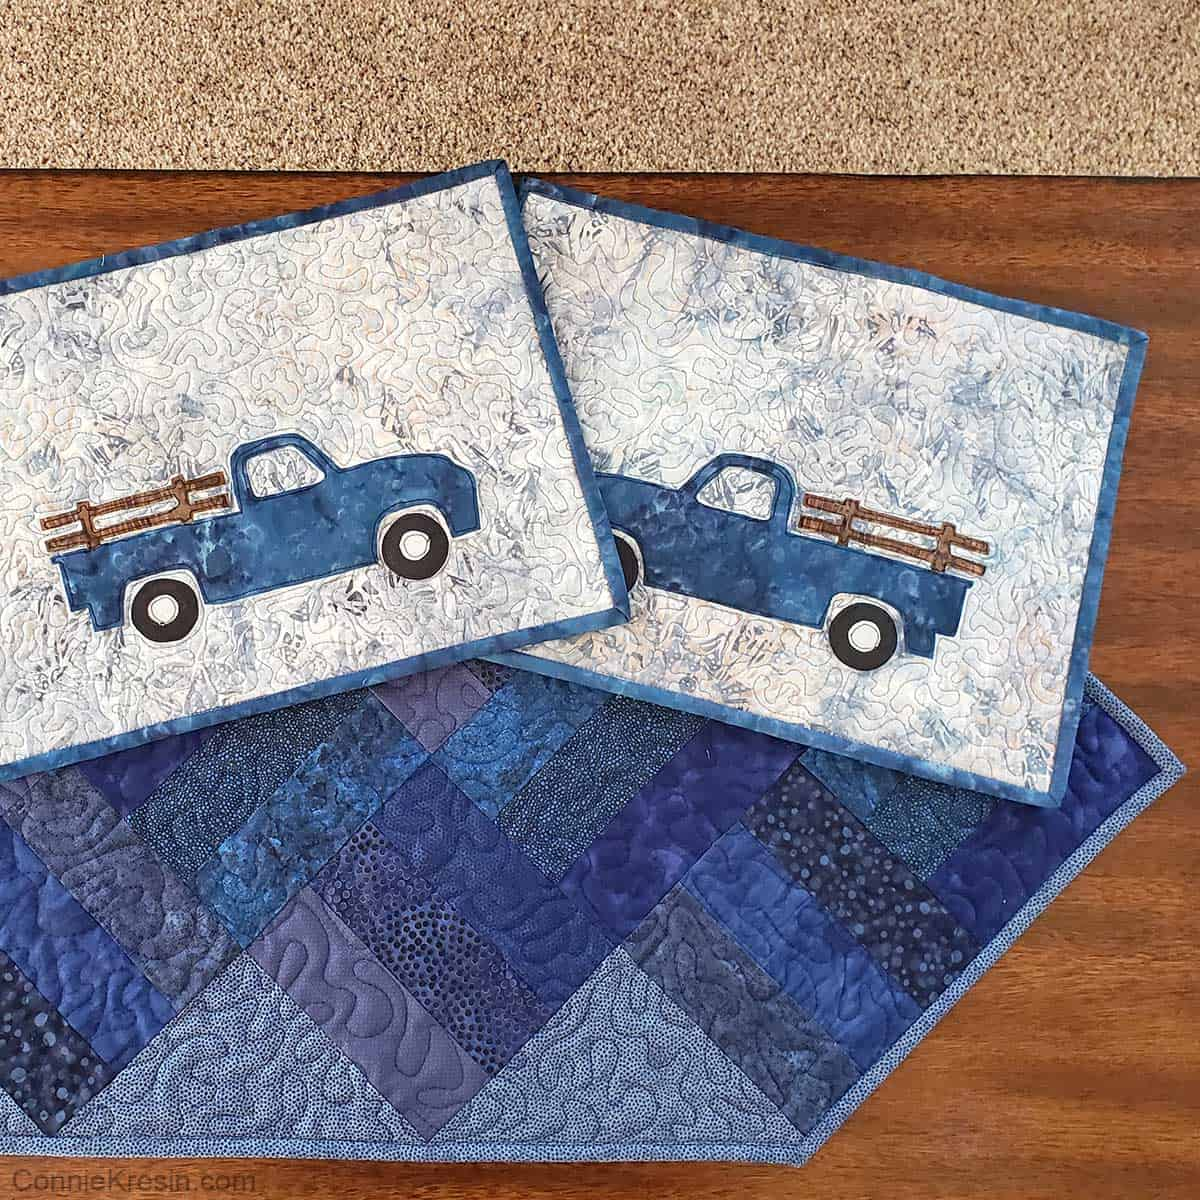 Blue truck placemats that match the table runner